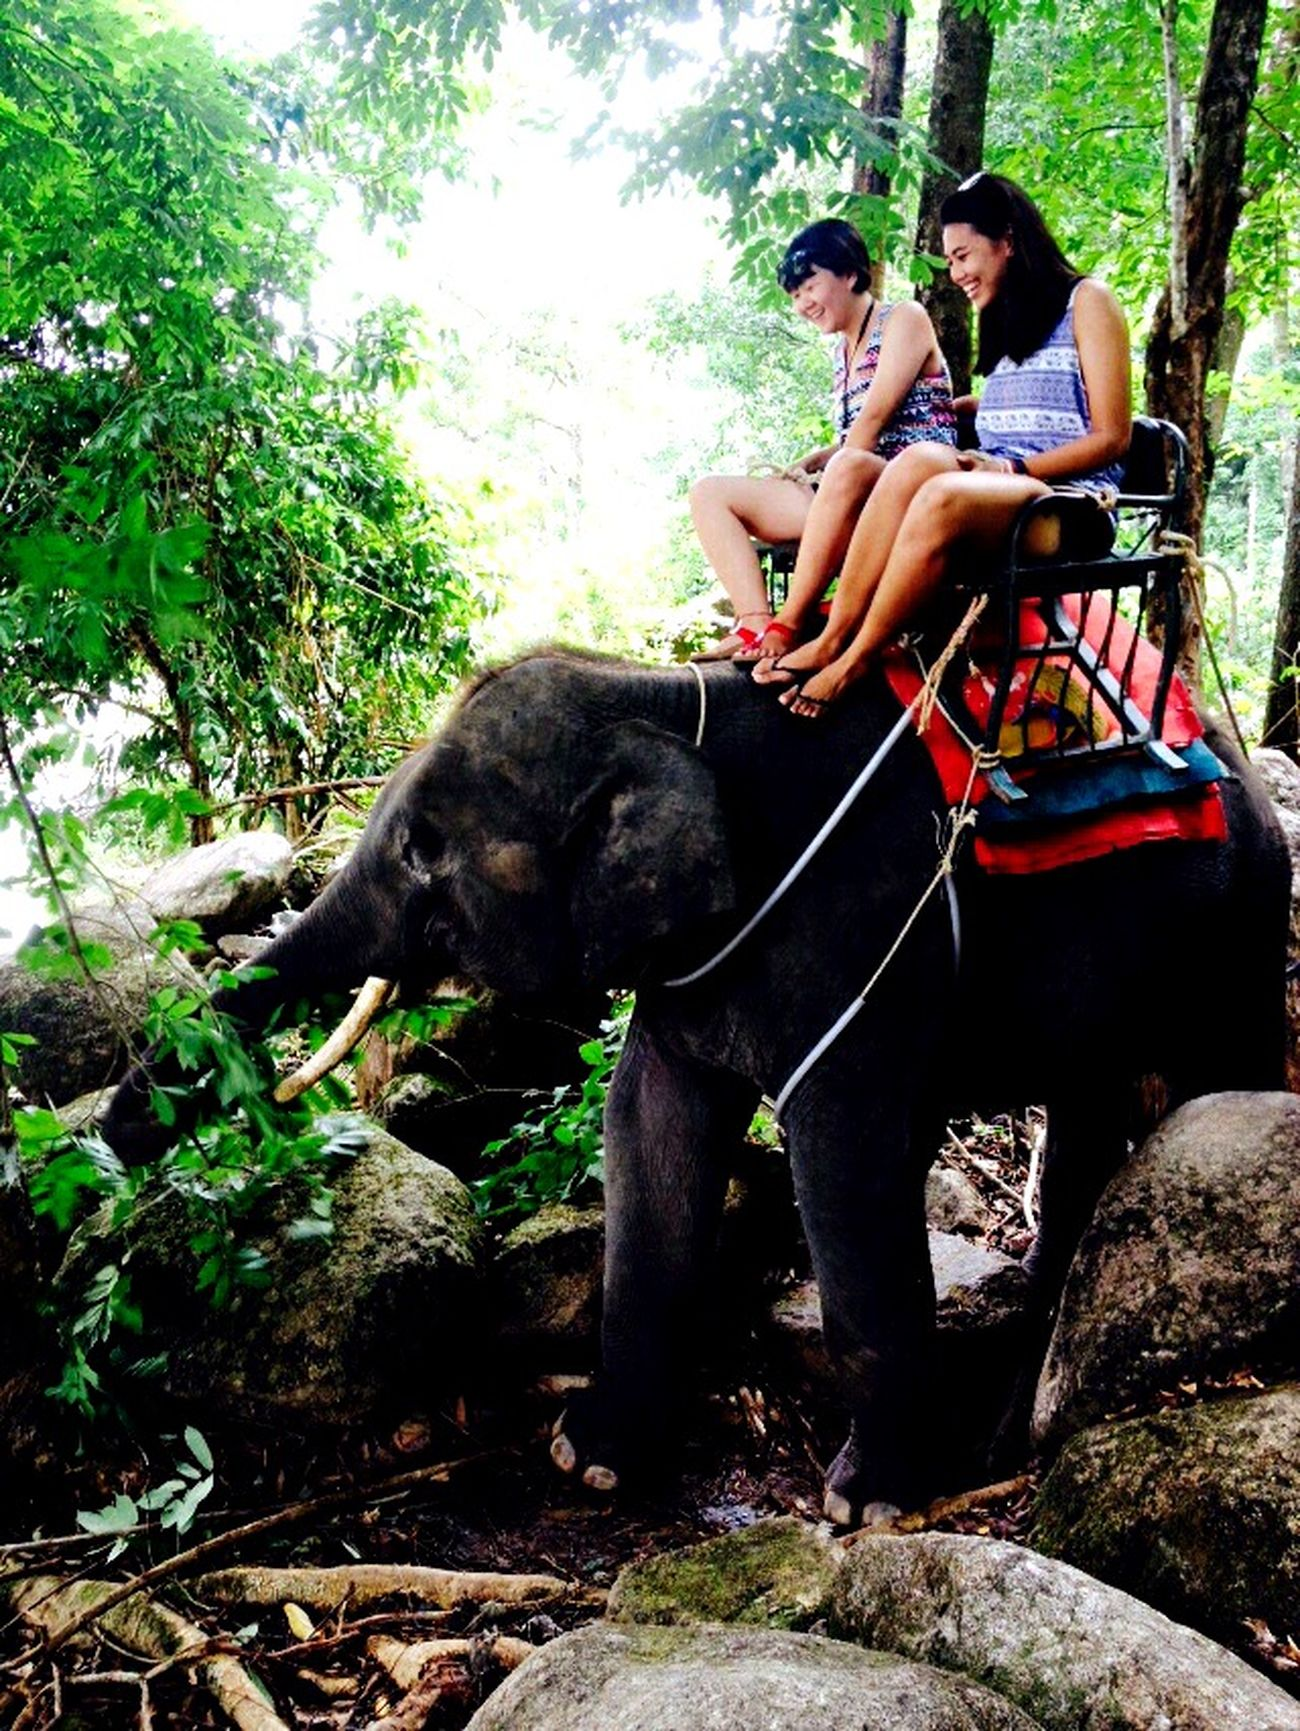 elephant trekking! Messy the baby! First and last time to ride on an elephant, my fav animal. feels bad to sit on them 😭 Elephant Krabi Travel Thailand Sunny Day Elephant Trekking Traveling Travel Photography